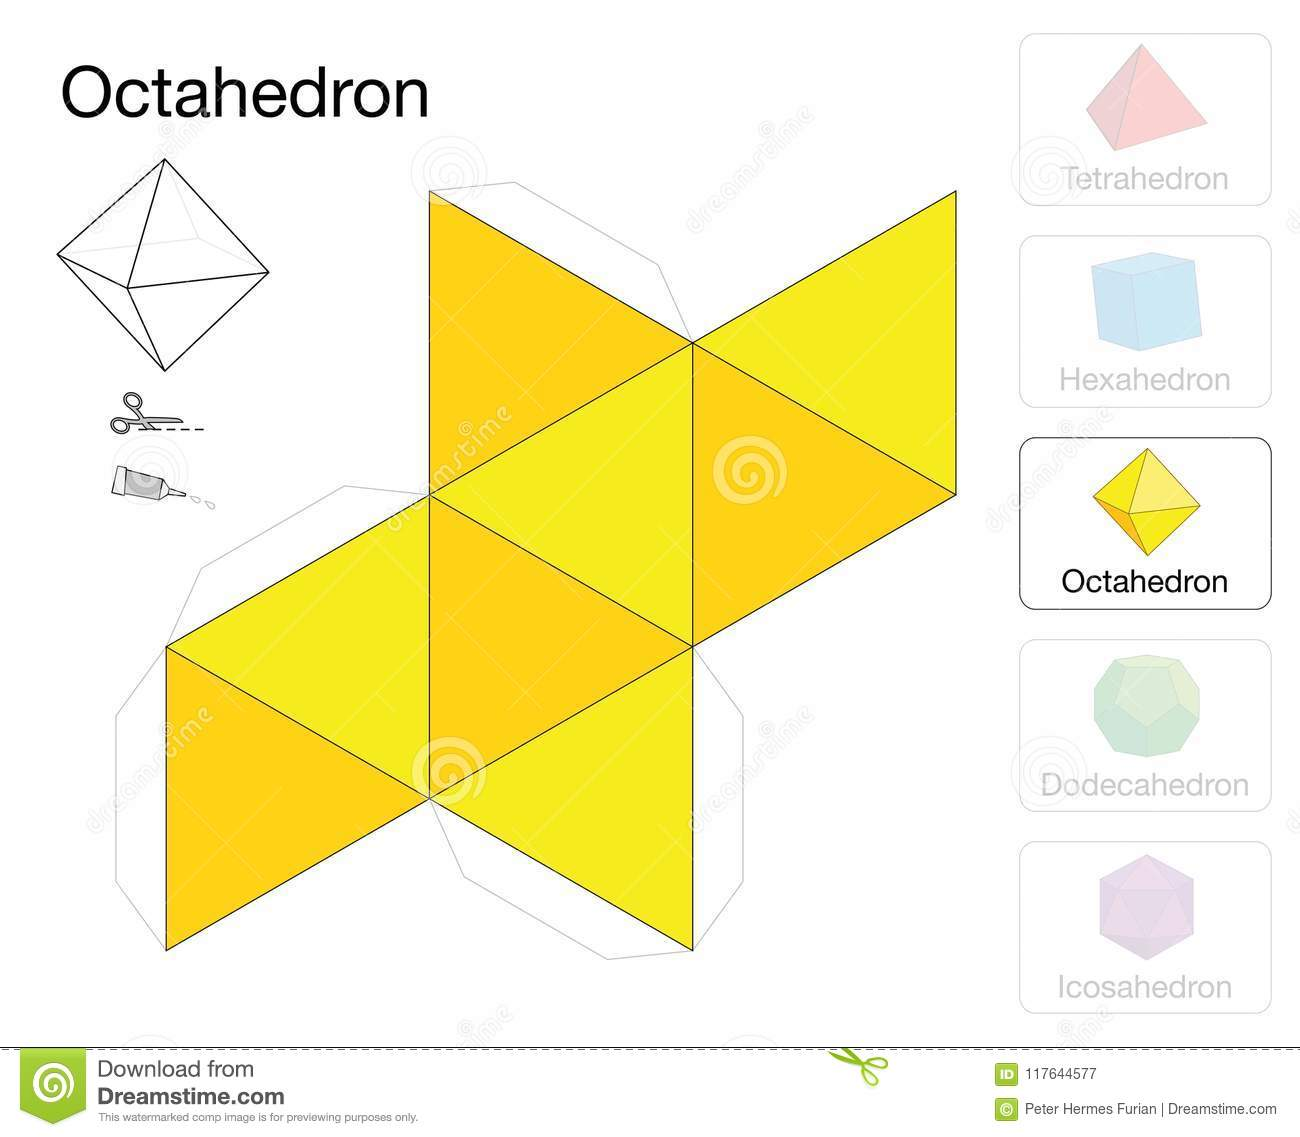 Octahedron Platonic Solid Template Paper Model Stock Vector